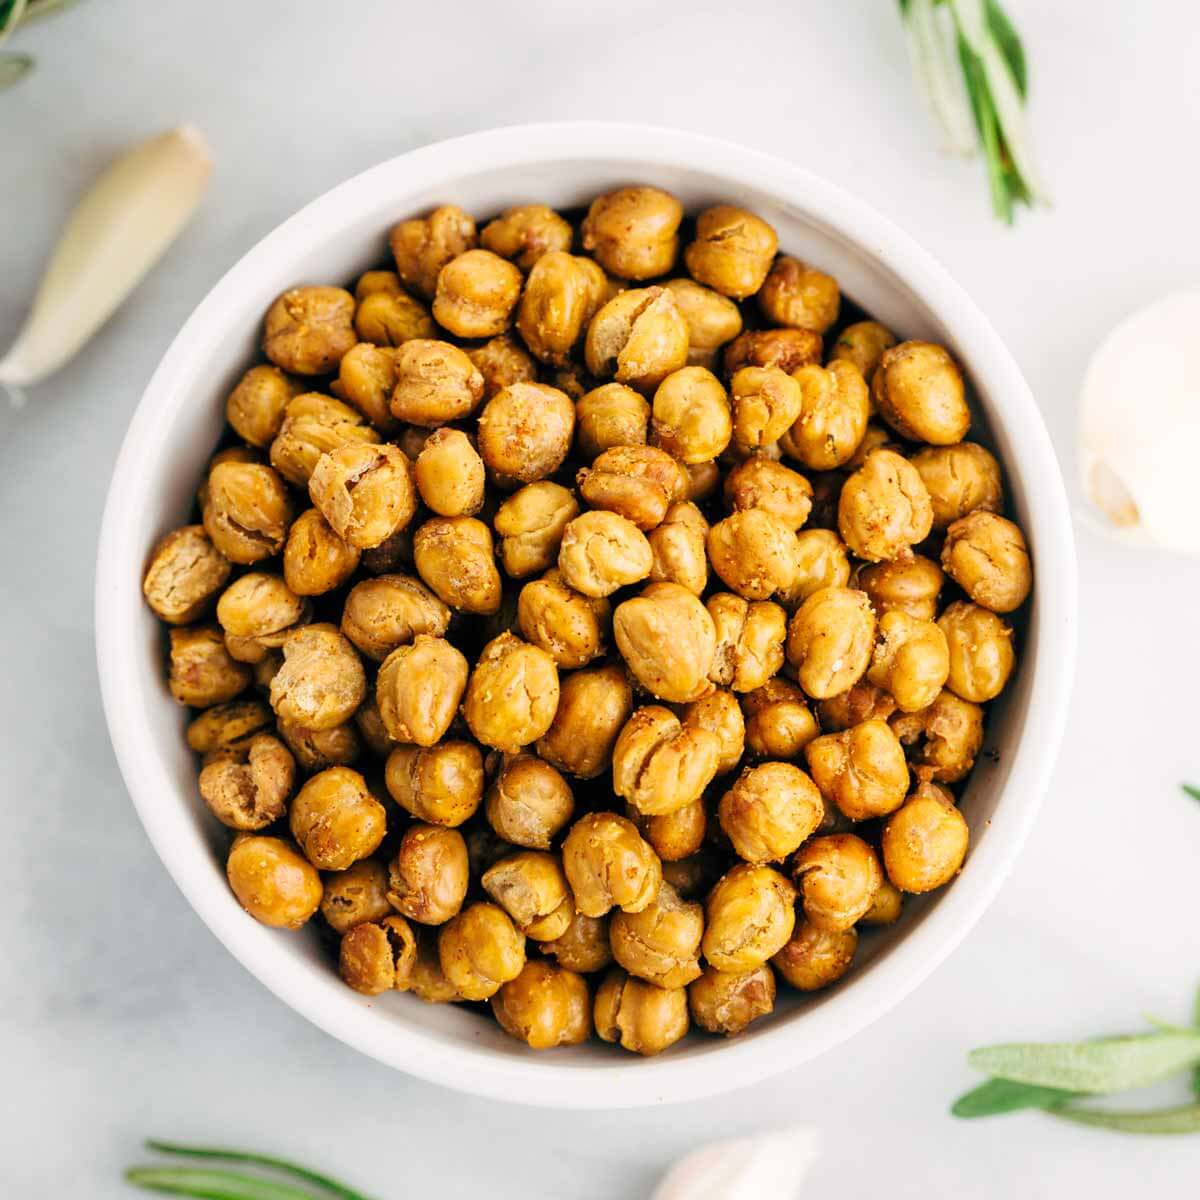 How To Make Crispy Roasted Chickpeas In The Oven | Jessica Gavin